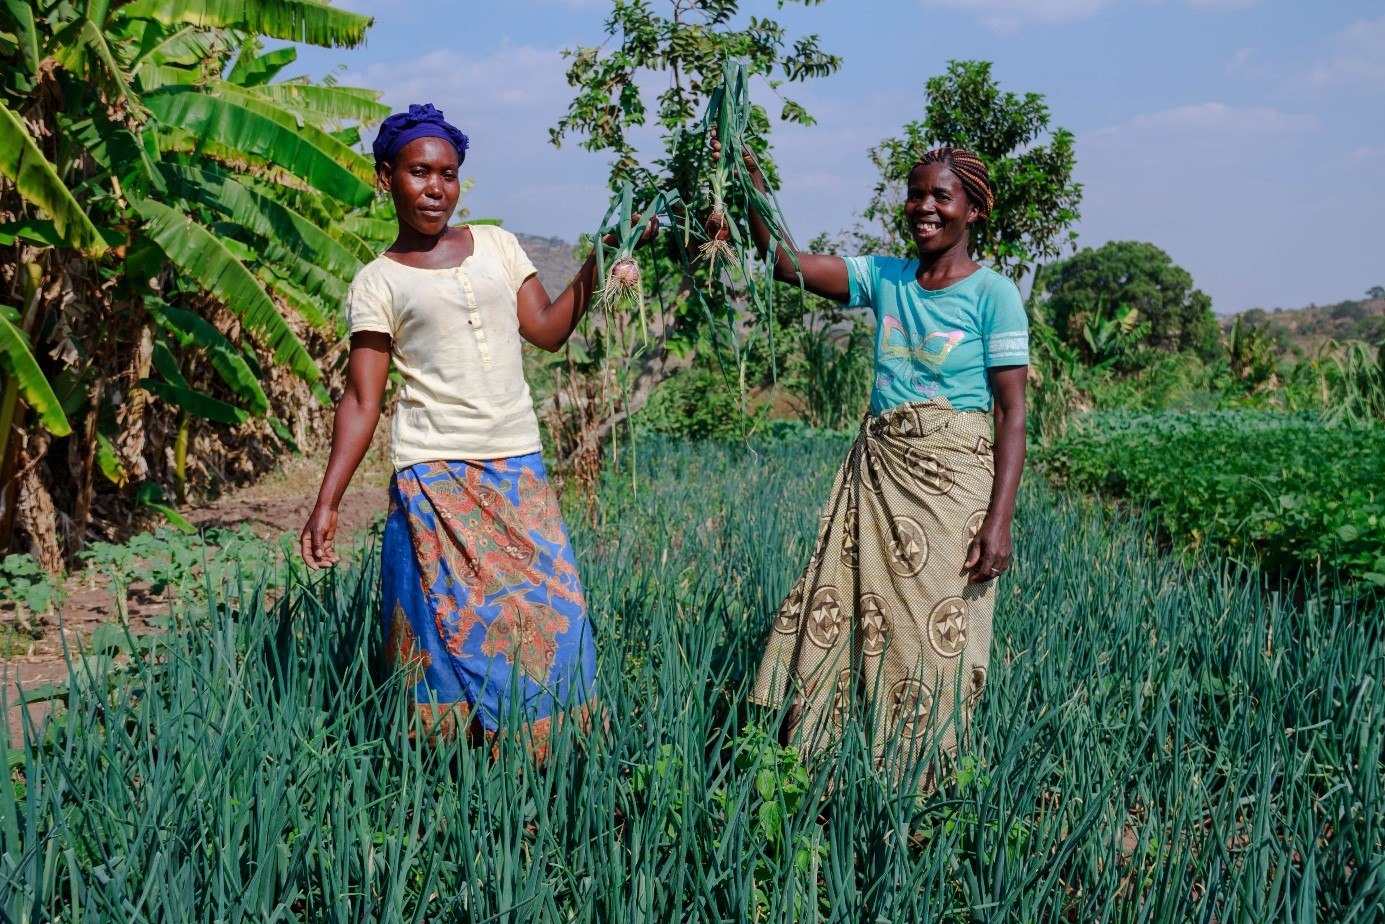 Christian Aid Scotland empowering women in Zambia through their project Making Agriculture a Business